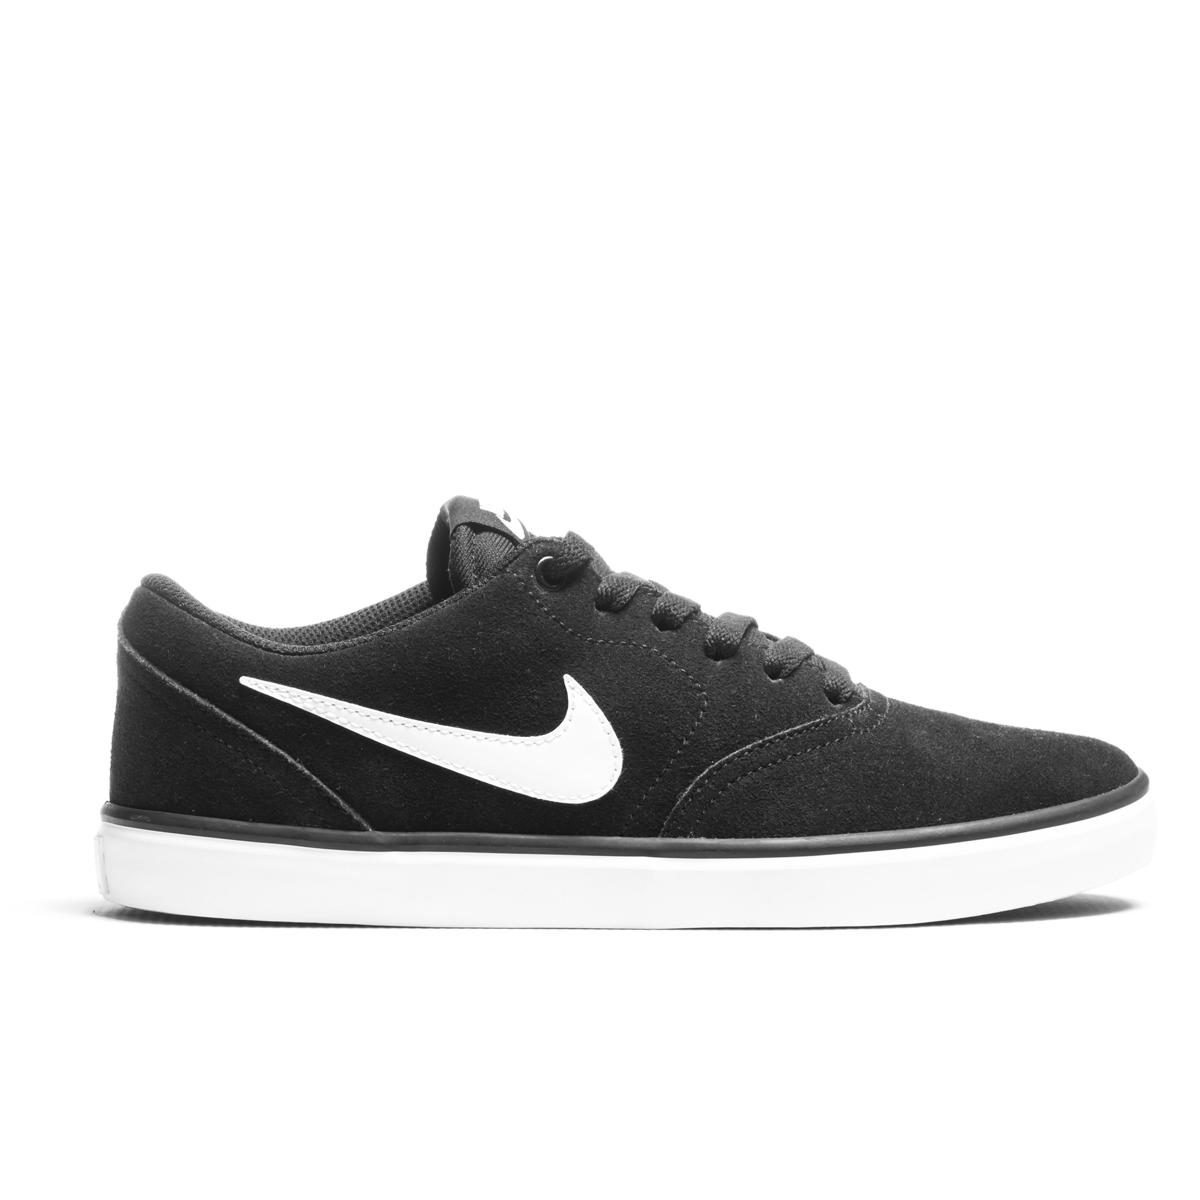 Buty Nike SB Check Black / White